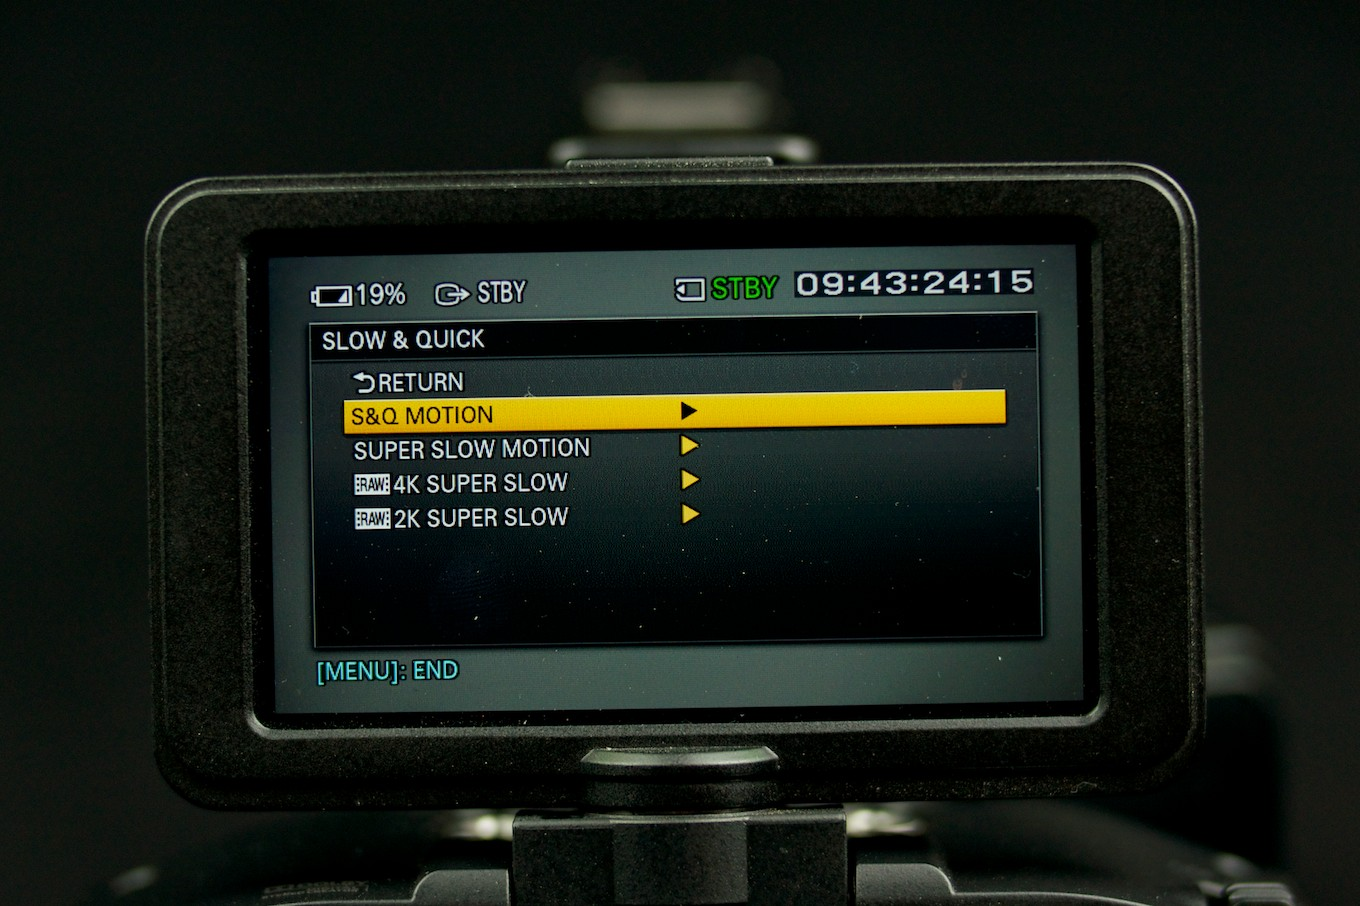 fs700 how to set end trigger